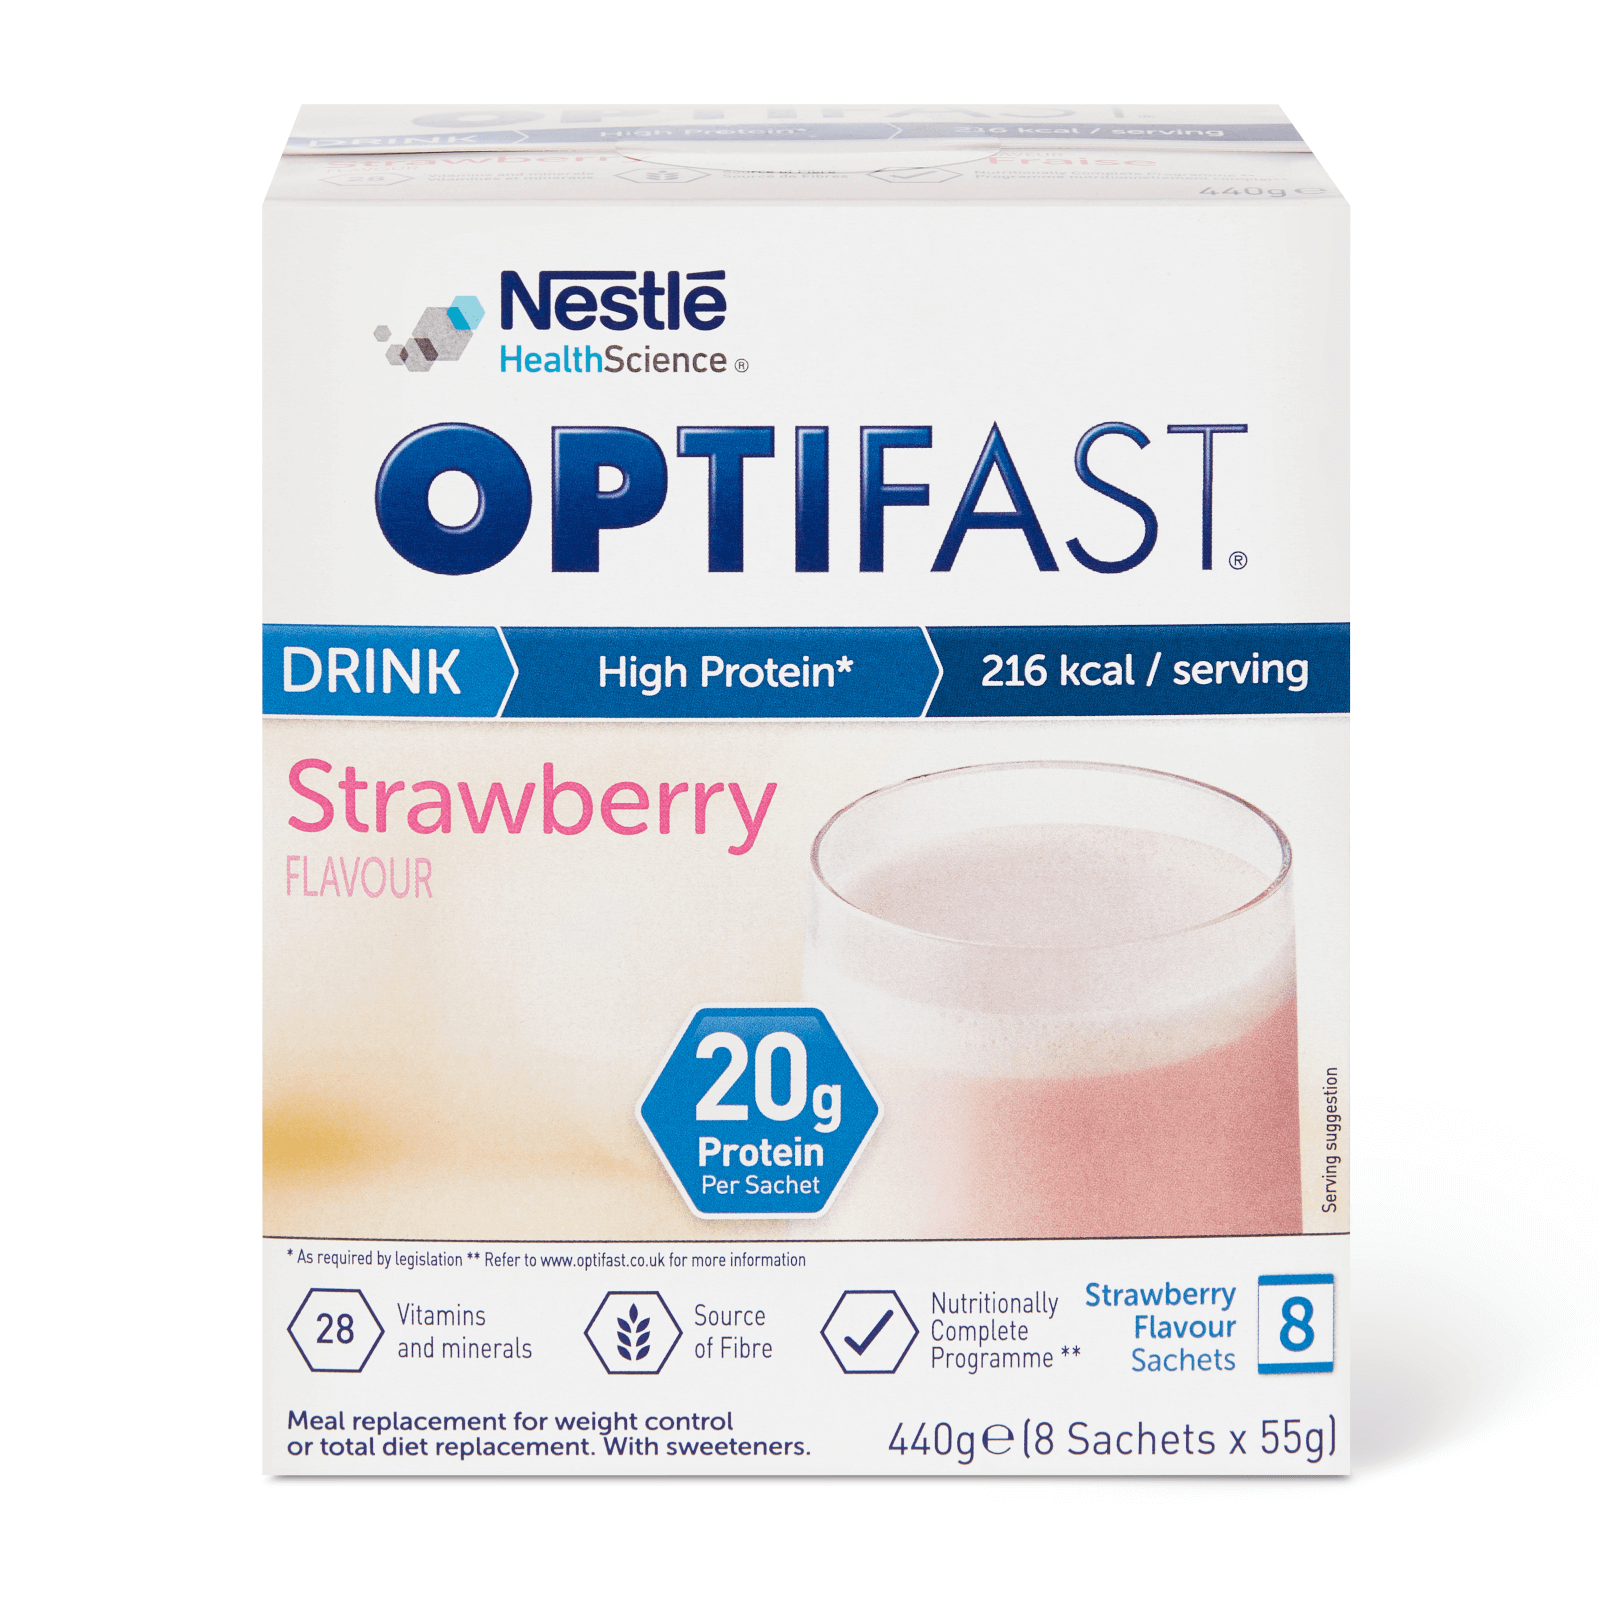 Image of the Strawberry flavour OPTIFAST drink